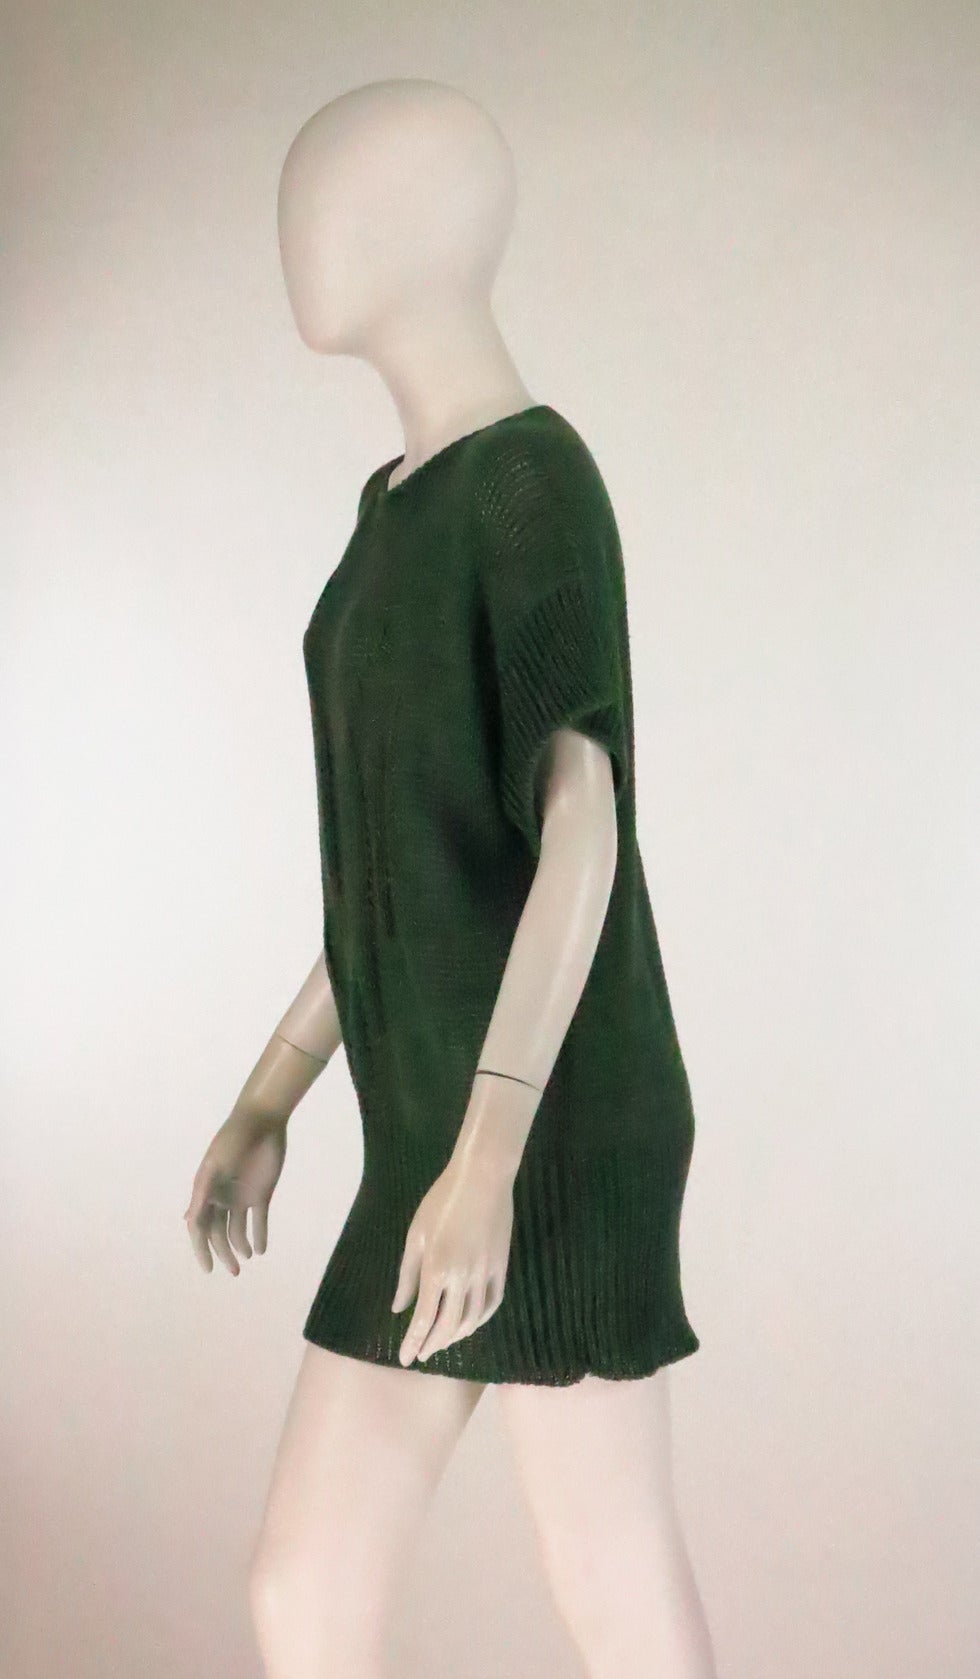 Chunky knit pull on sweater tunic in pine green rayon...Round neck with cropped kimono sleeves...Ribbed hem...Abstract intarsia knit design at sweater front...unlined...Jil Sander from the 1980s...In excellent condition...Fits like a